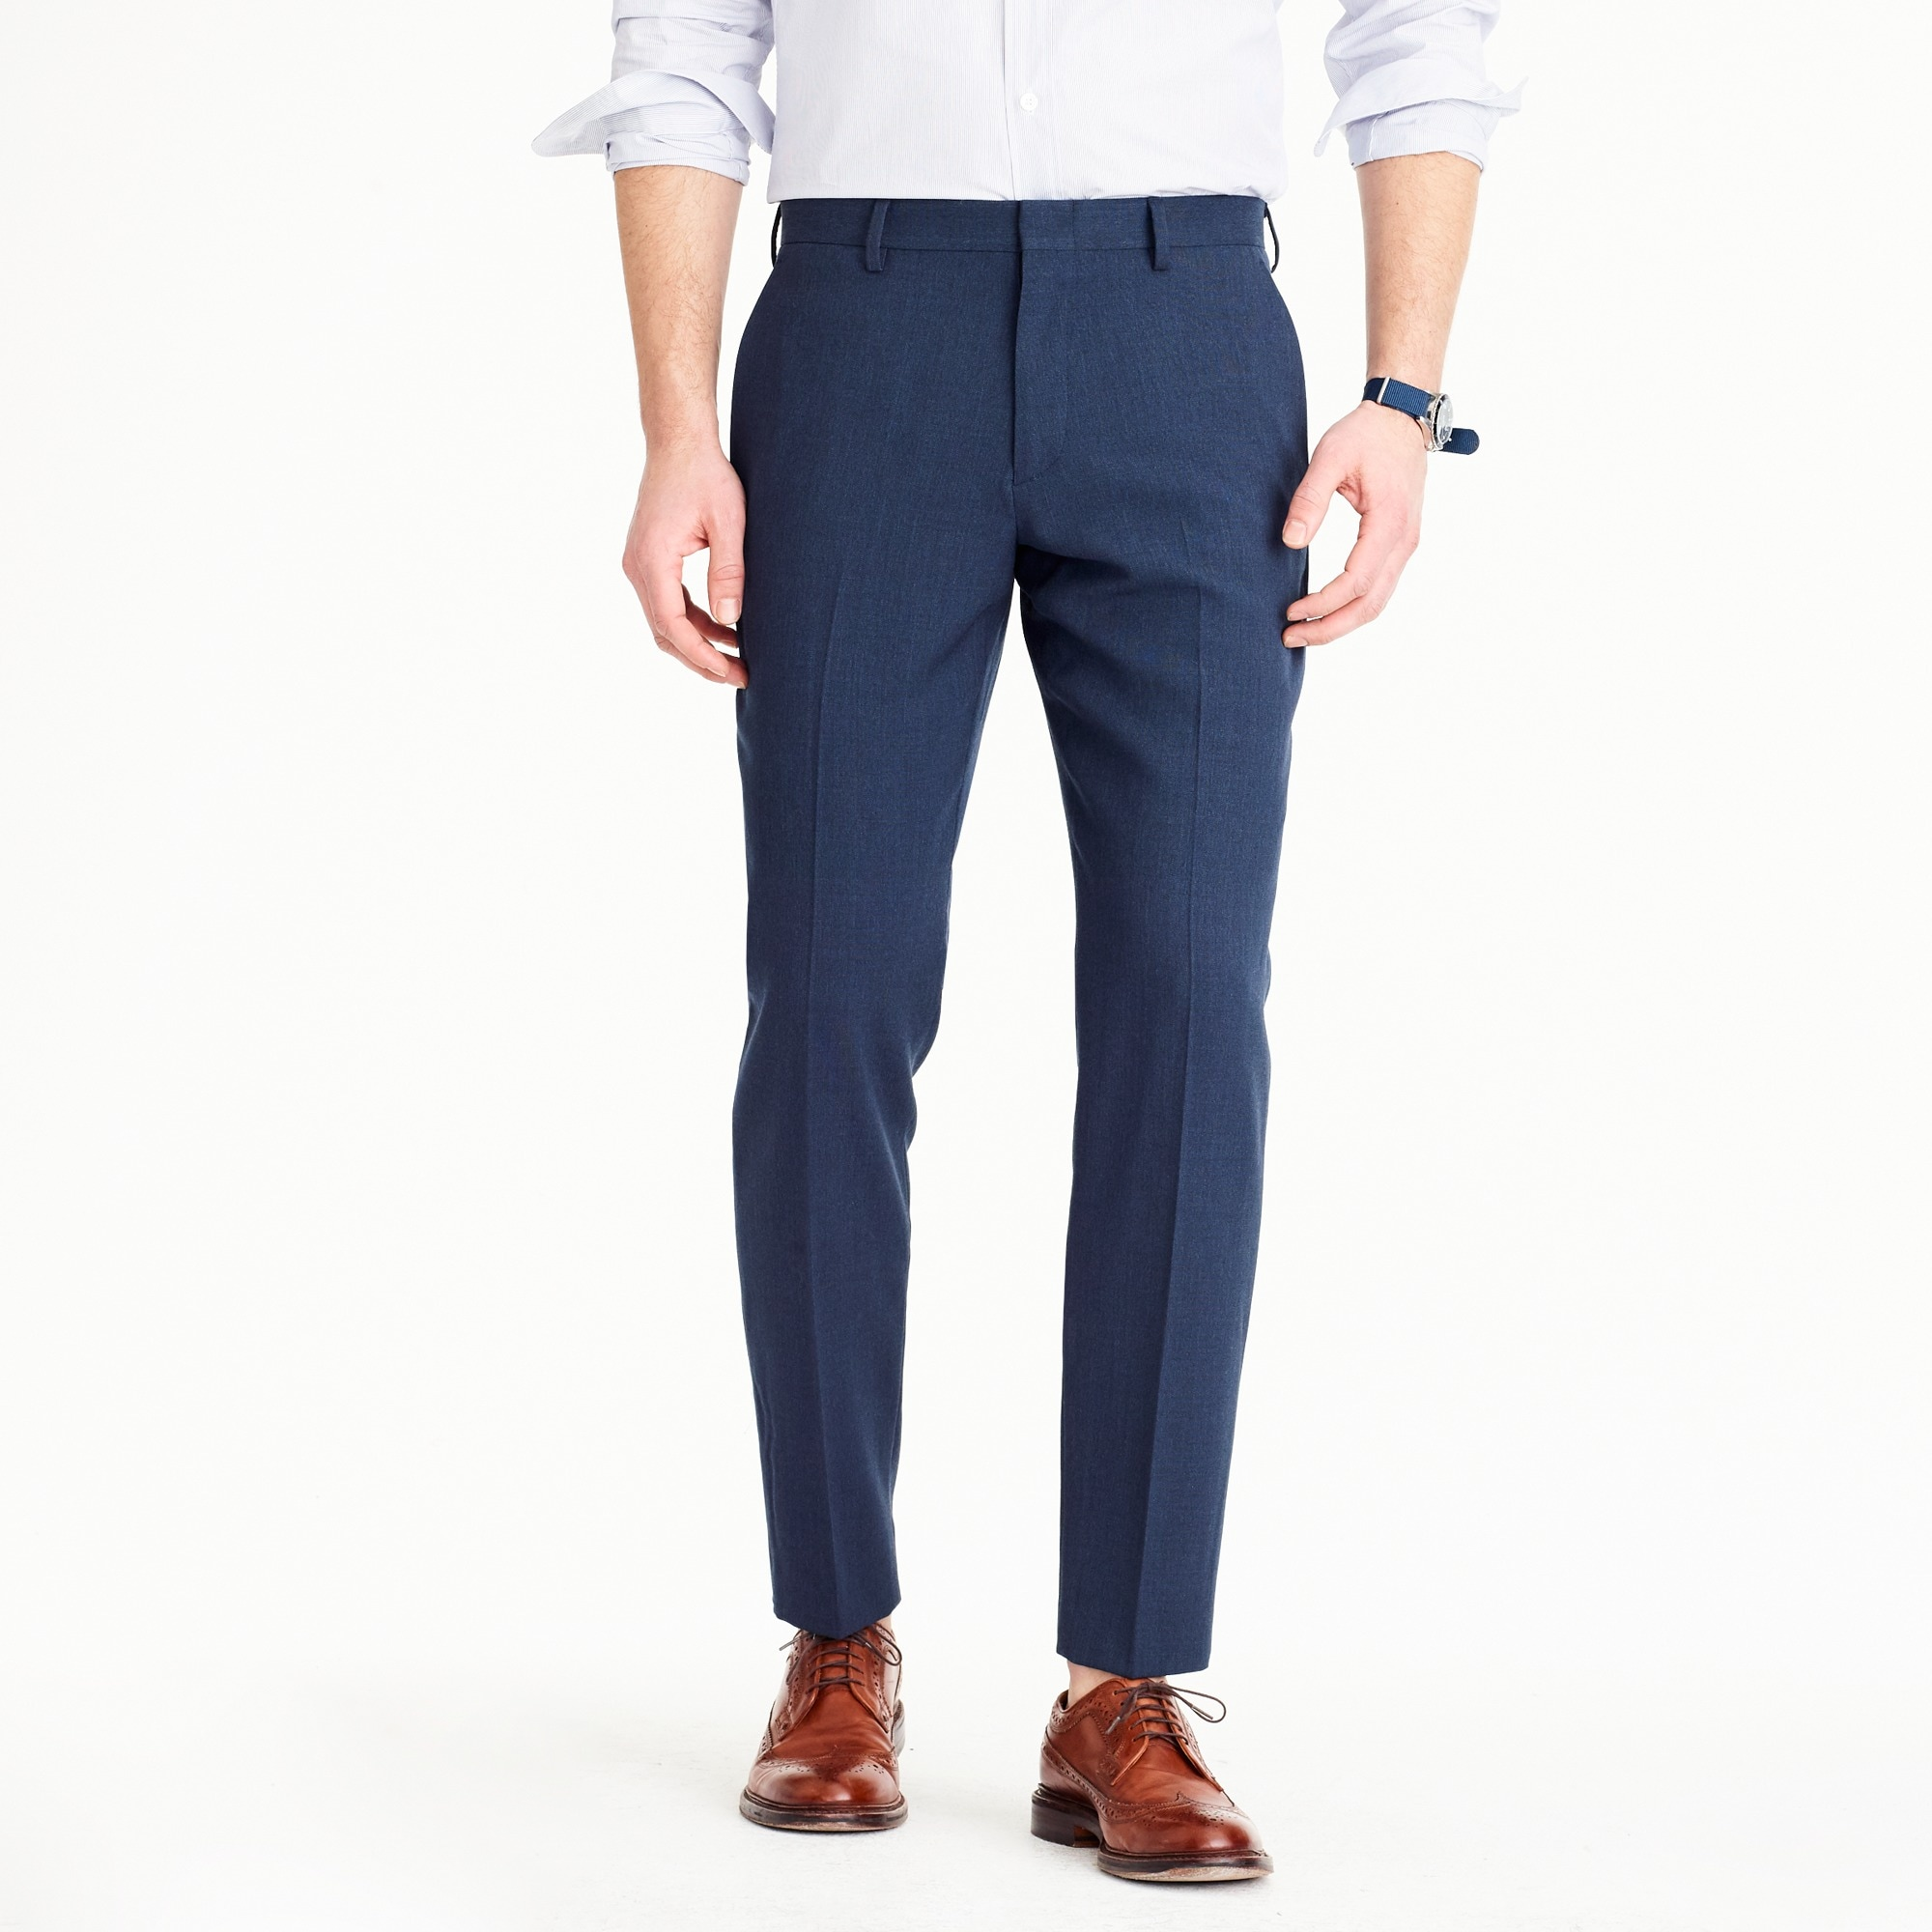 ludlow traveler suit pant in italian wool : mens suits